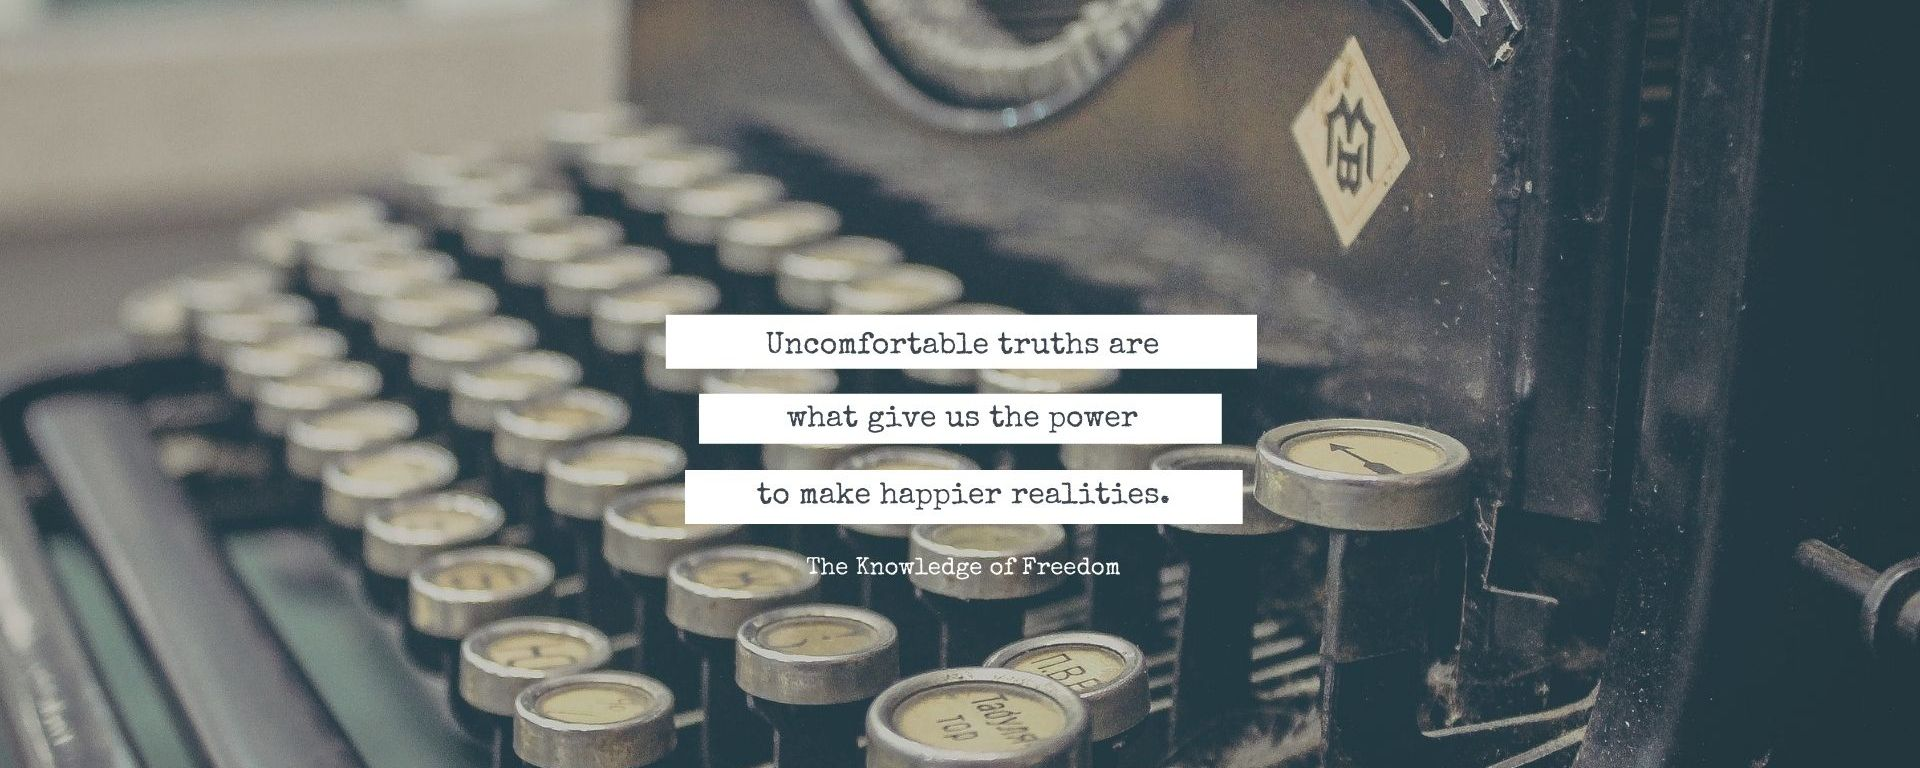 Quote which reads uncomfortable truths are what give us the power to make happier realities